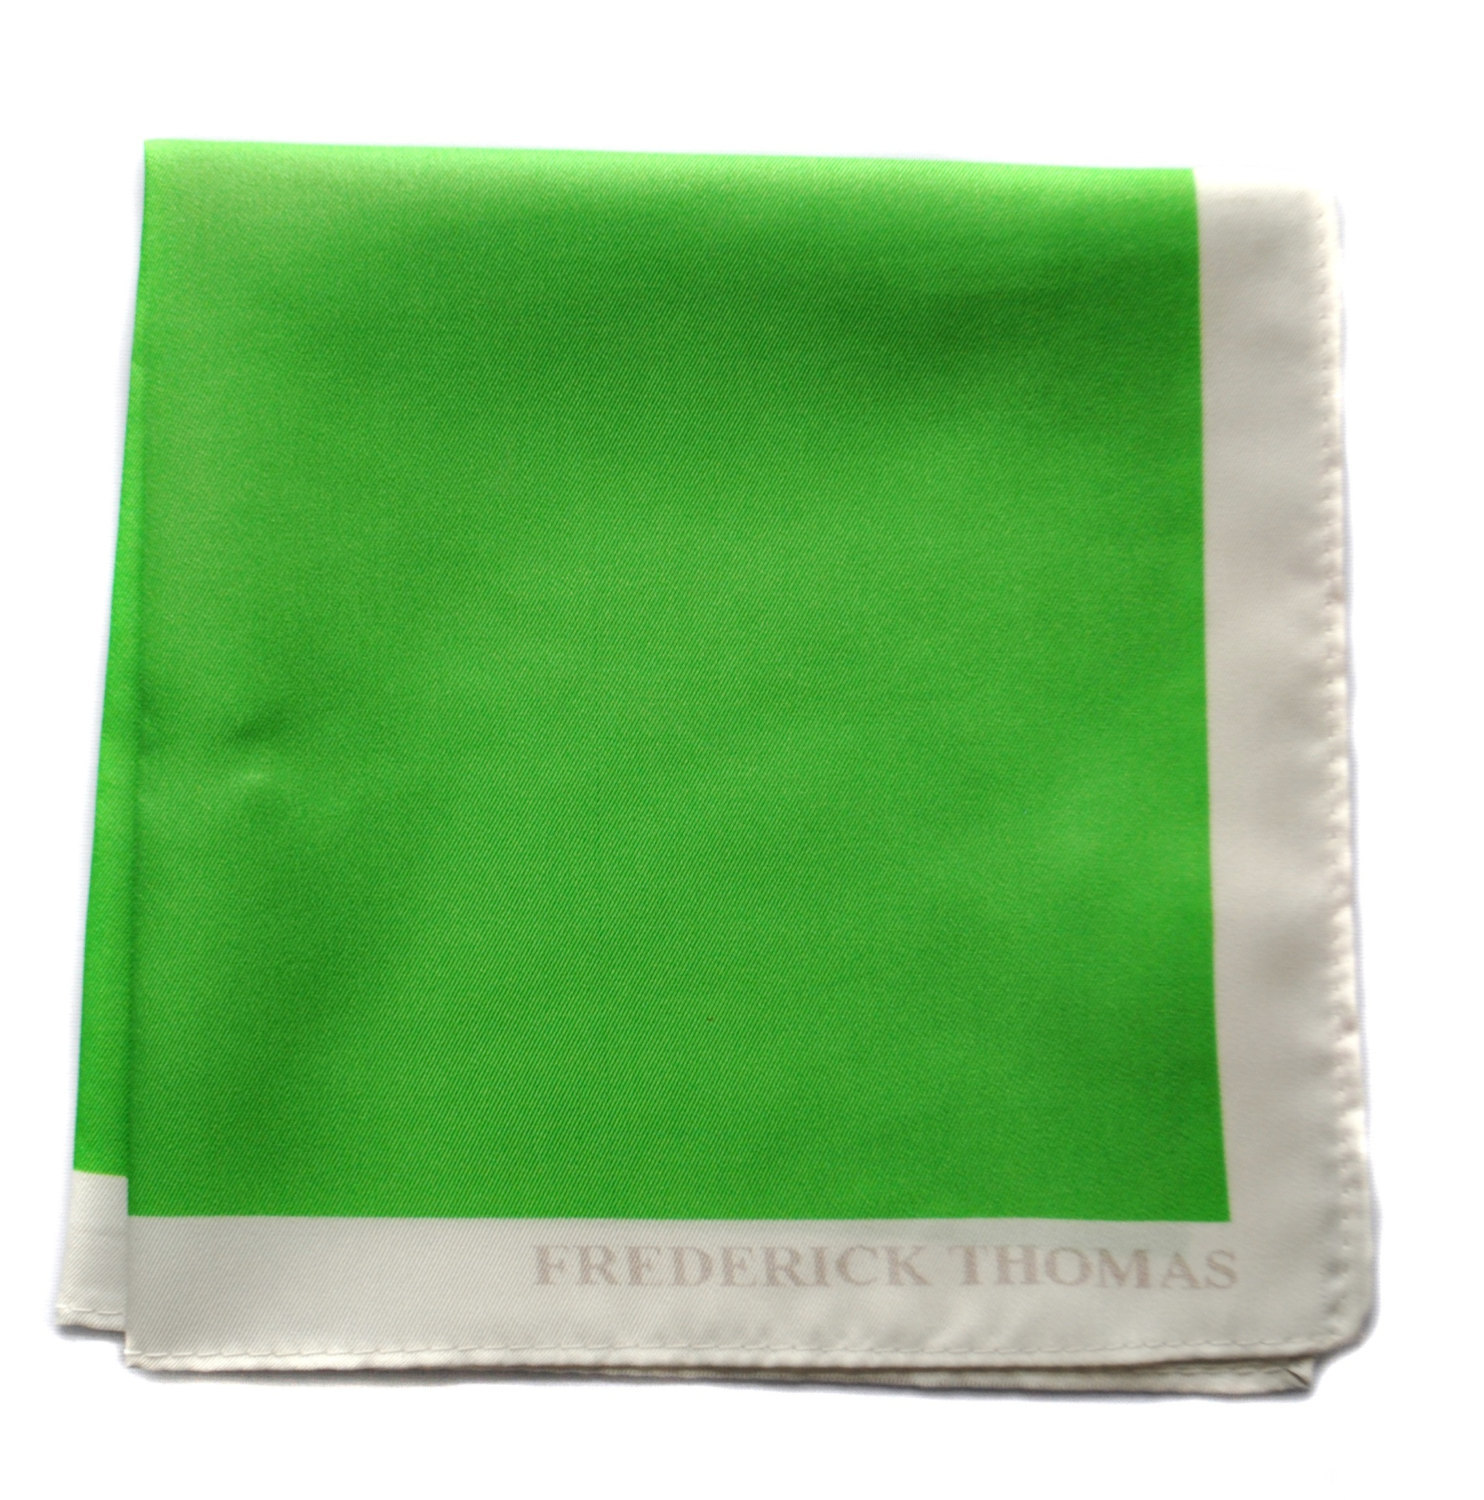 Frederick Thomas bright green pocket square with white edging FT1663